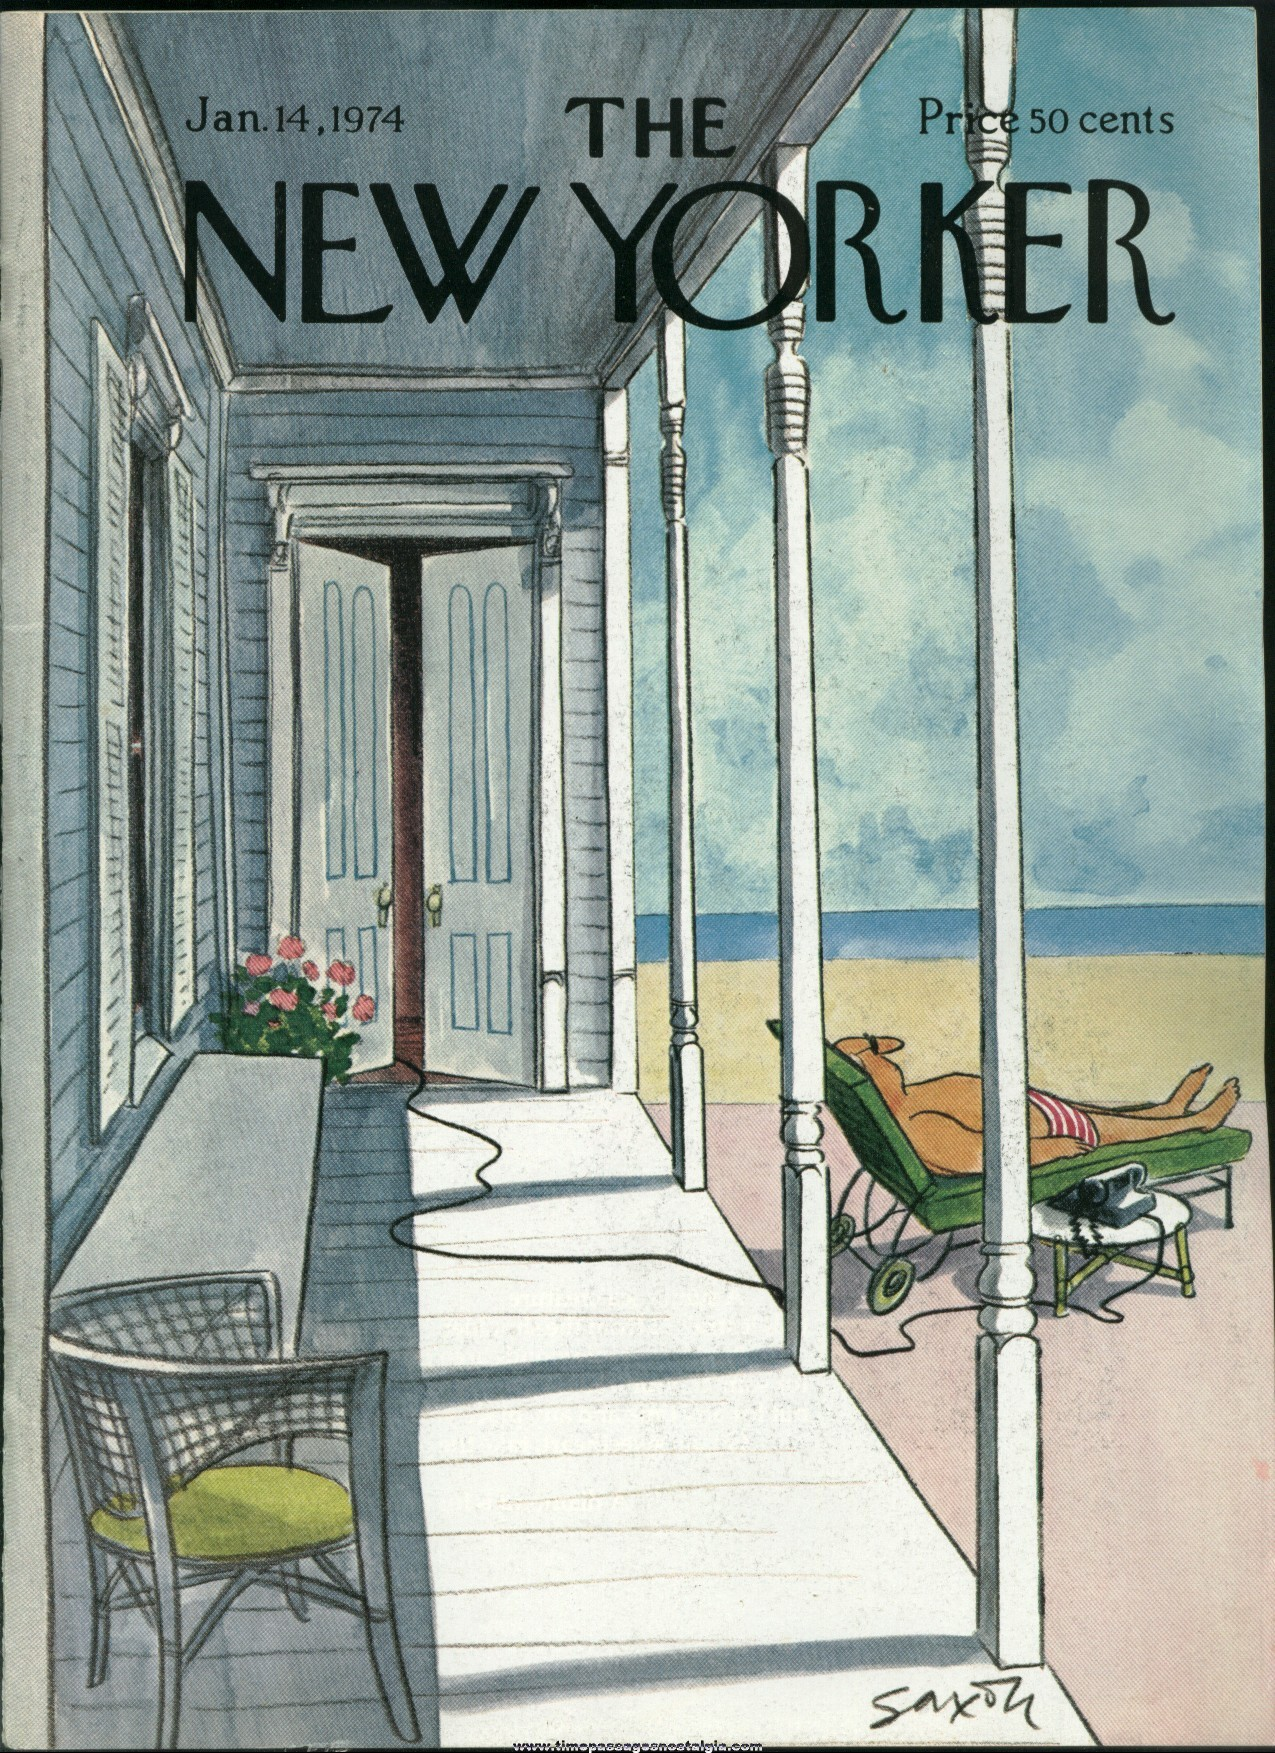 New Yorker Magazine - January 14, 1974 - Cover by Charles Saxon